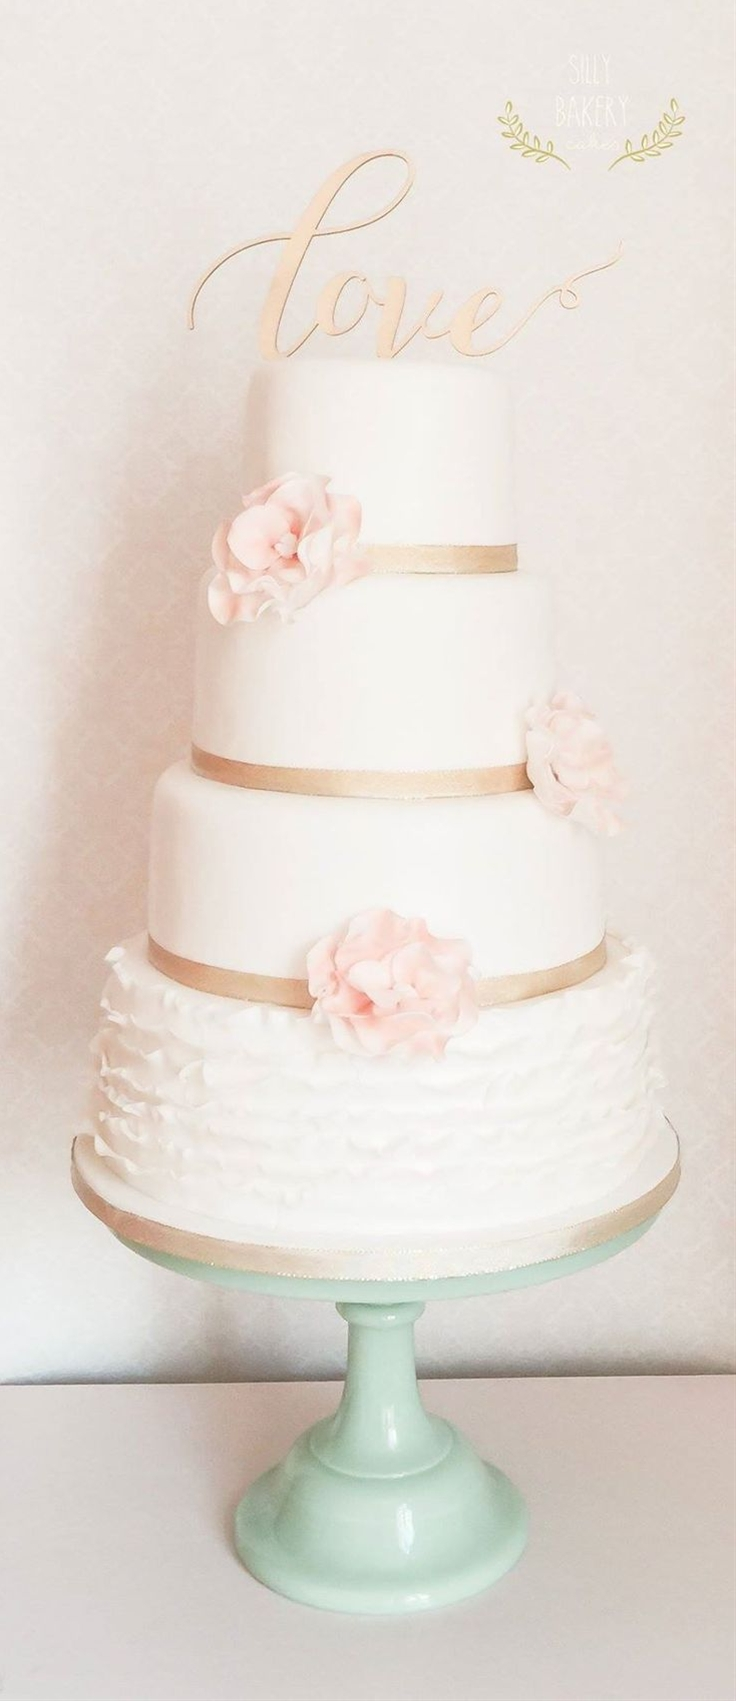 This wedding cake stands out with unique features and colors that make them perfectly divine and romantic